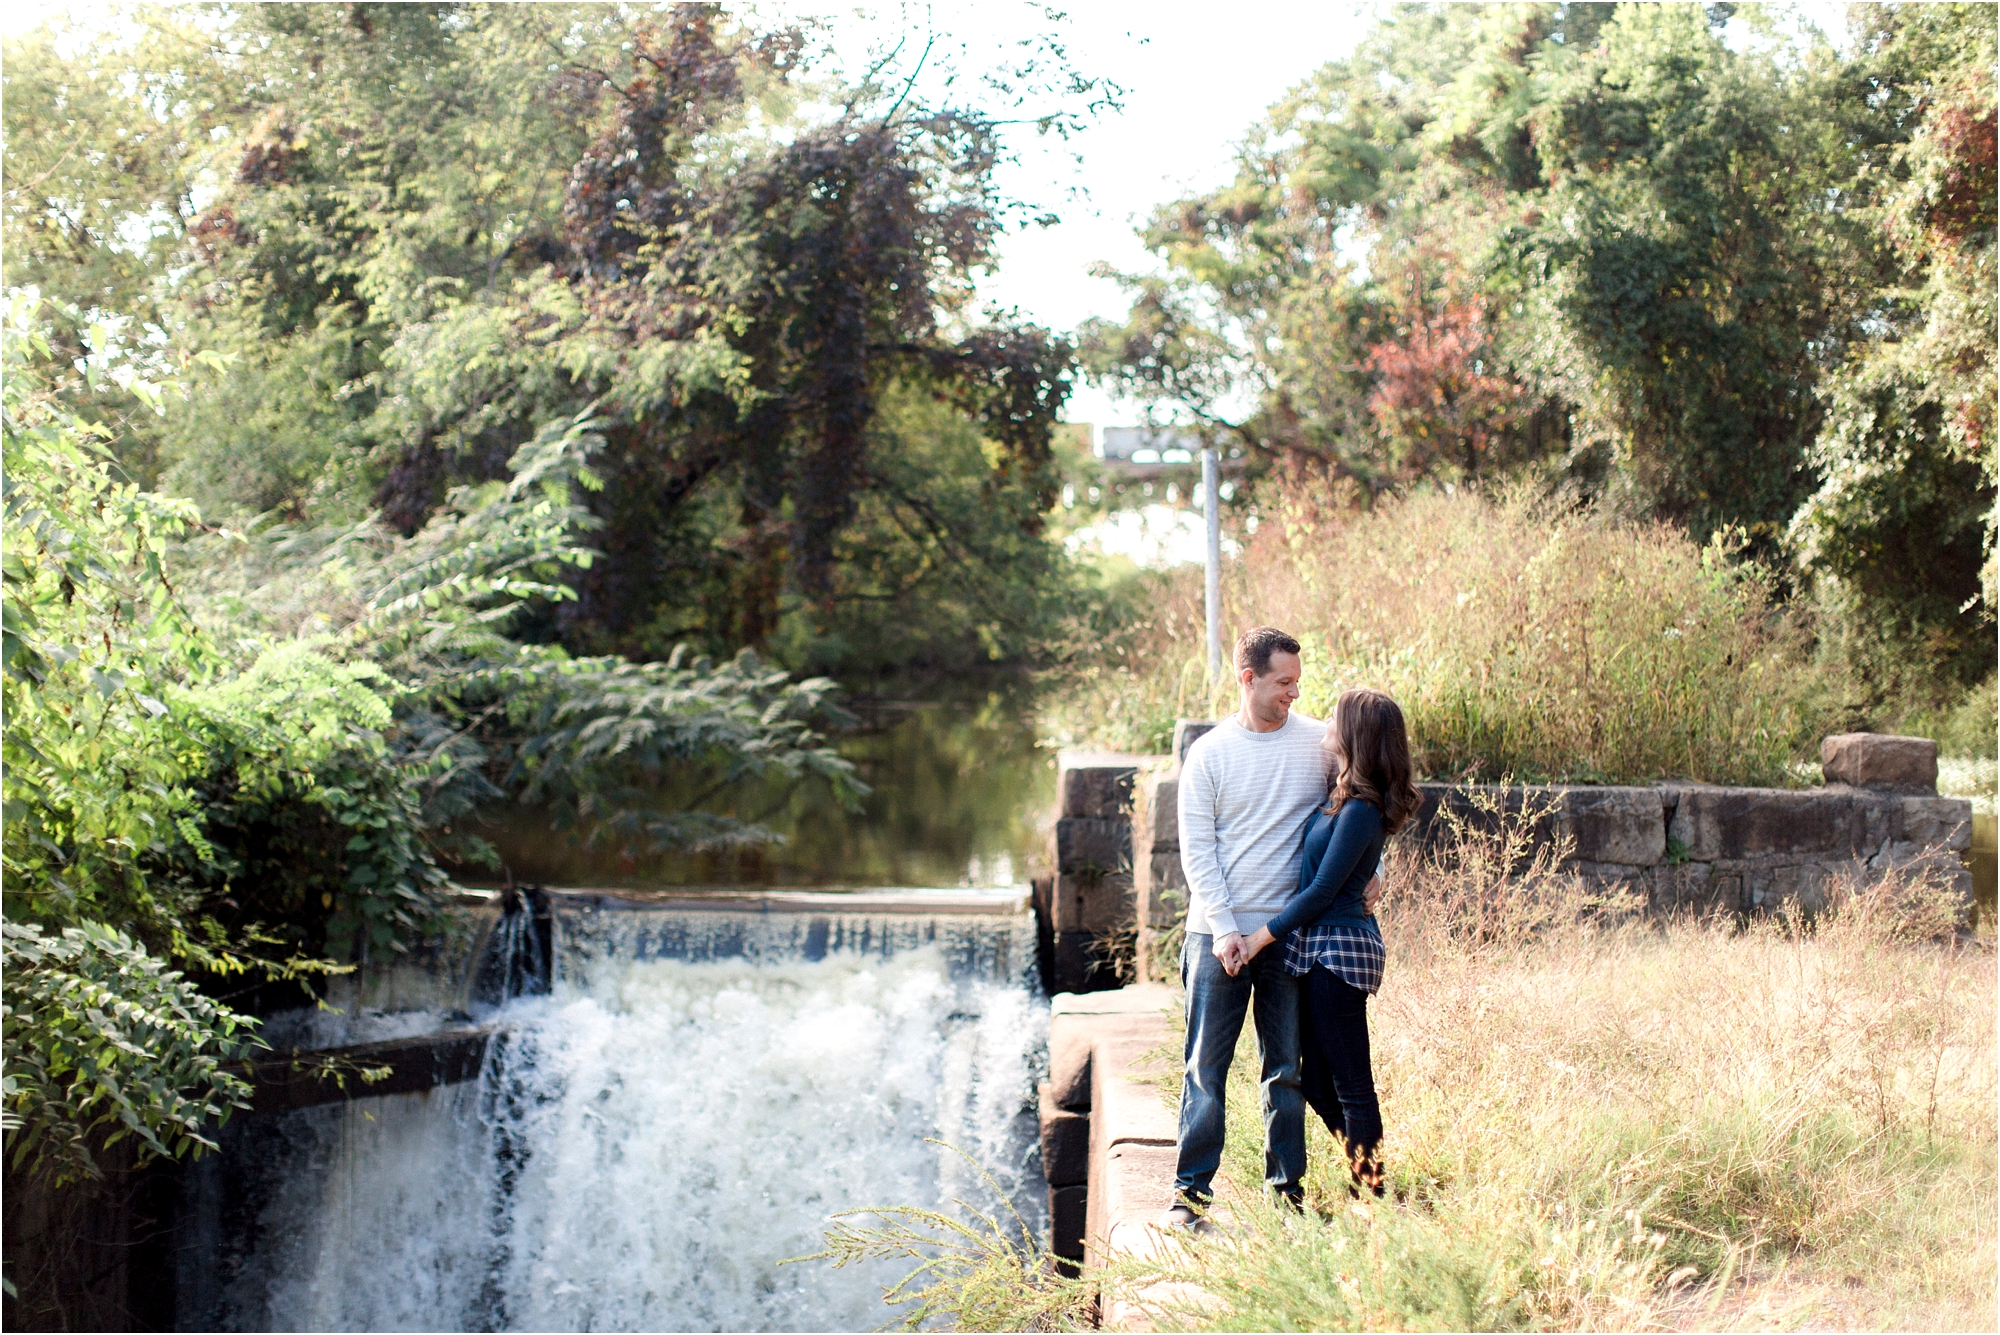 brittany-brad-richmond-va-pump-house-park-monument-ave-engagement-photos_0005.jpg